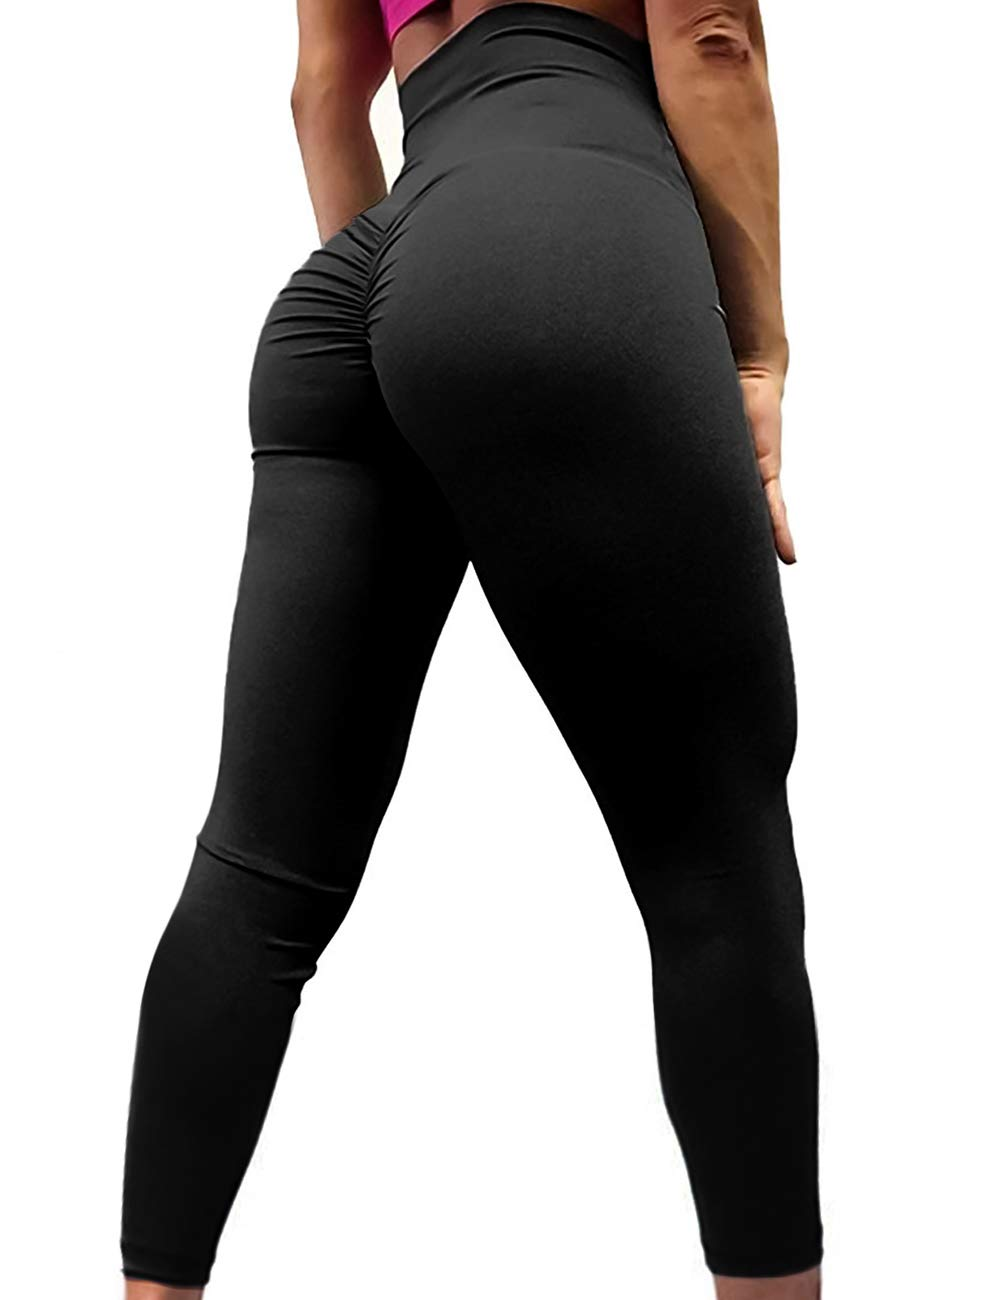 A AGROSTE Women's Yoga Pants High Waist Scrunch Ruched Butt Lifting Workout Leggings Sport Fitness Gym Push Up Tights